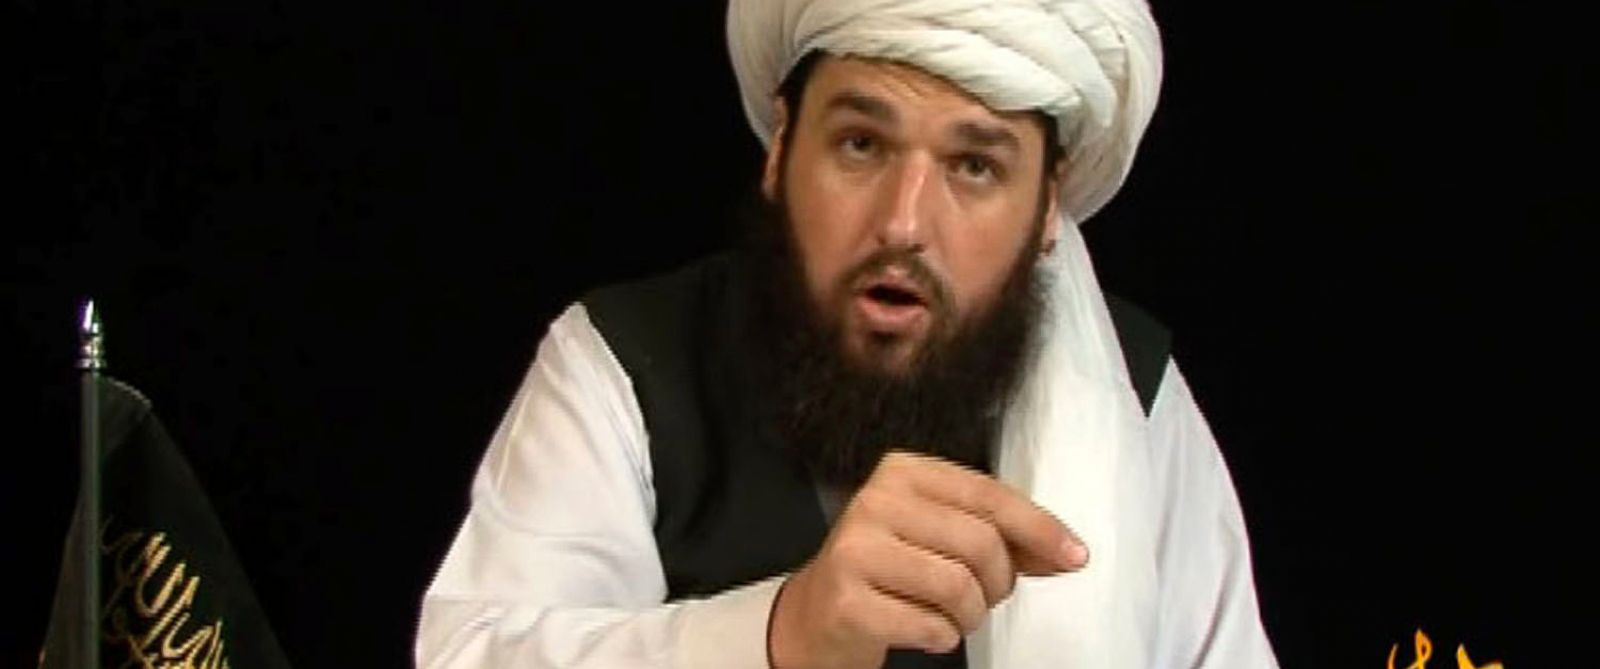 PHOTO: American al-Qaeda militant Adam Gadahn speaks in this video grab from an Internet video posted in October 4, 2008.